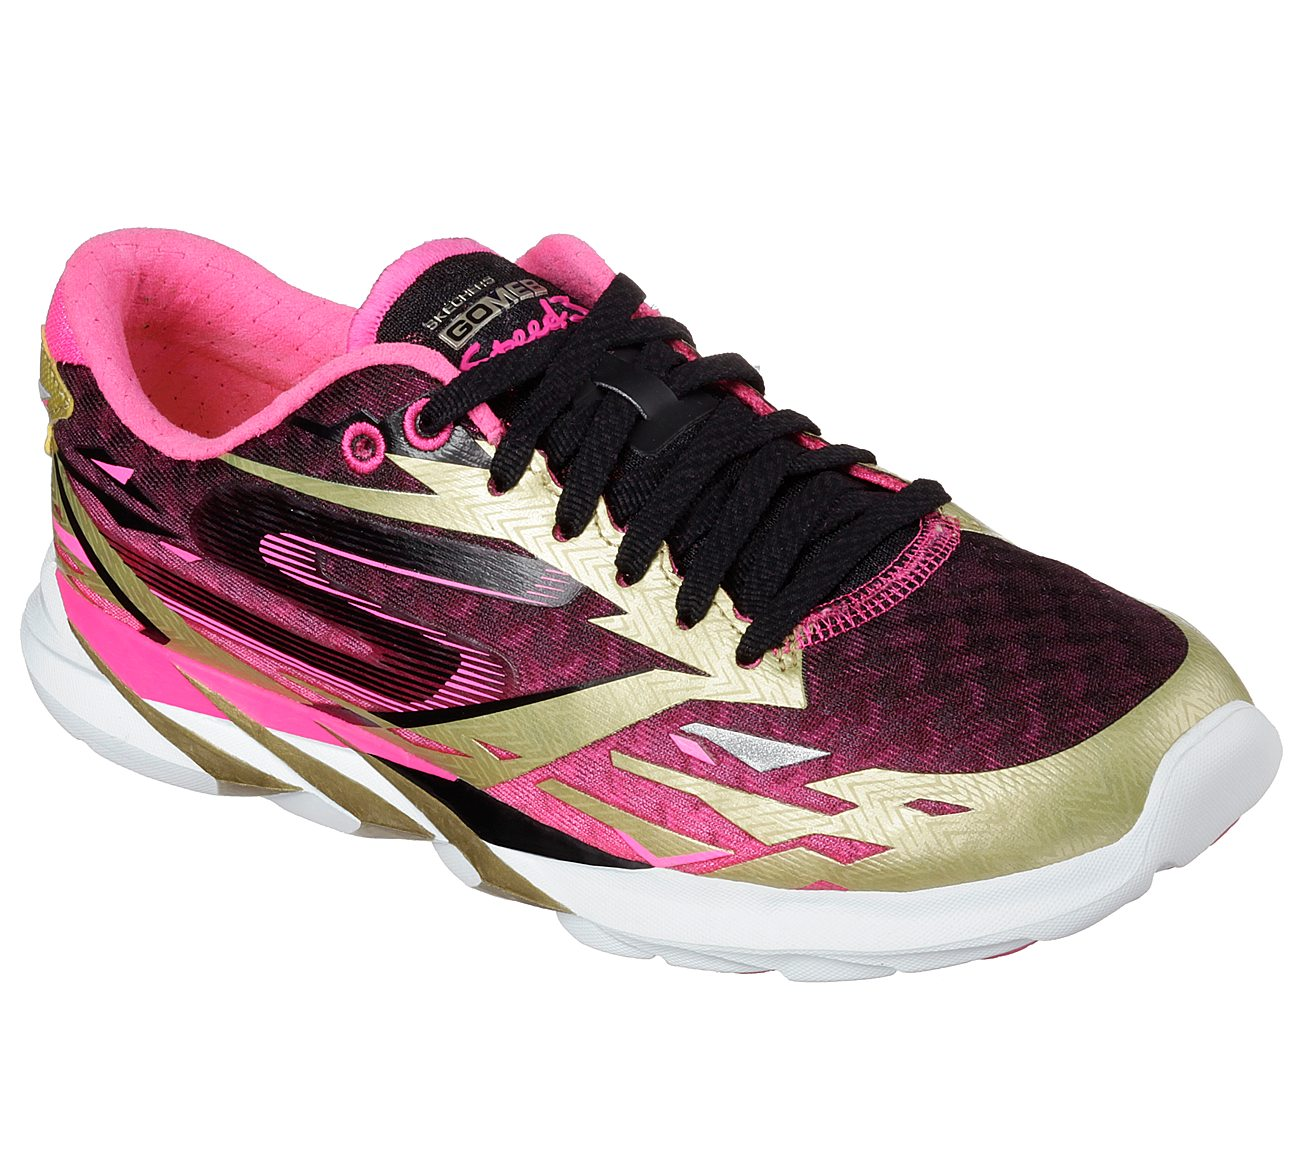 SKECHERS GOMEB SPEED 3 – The BCode